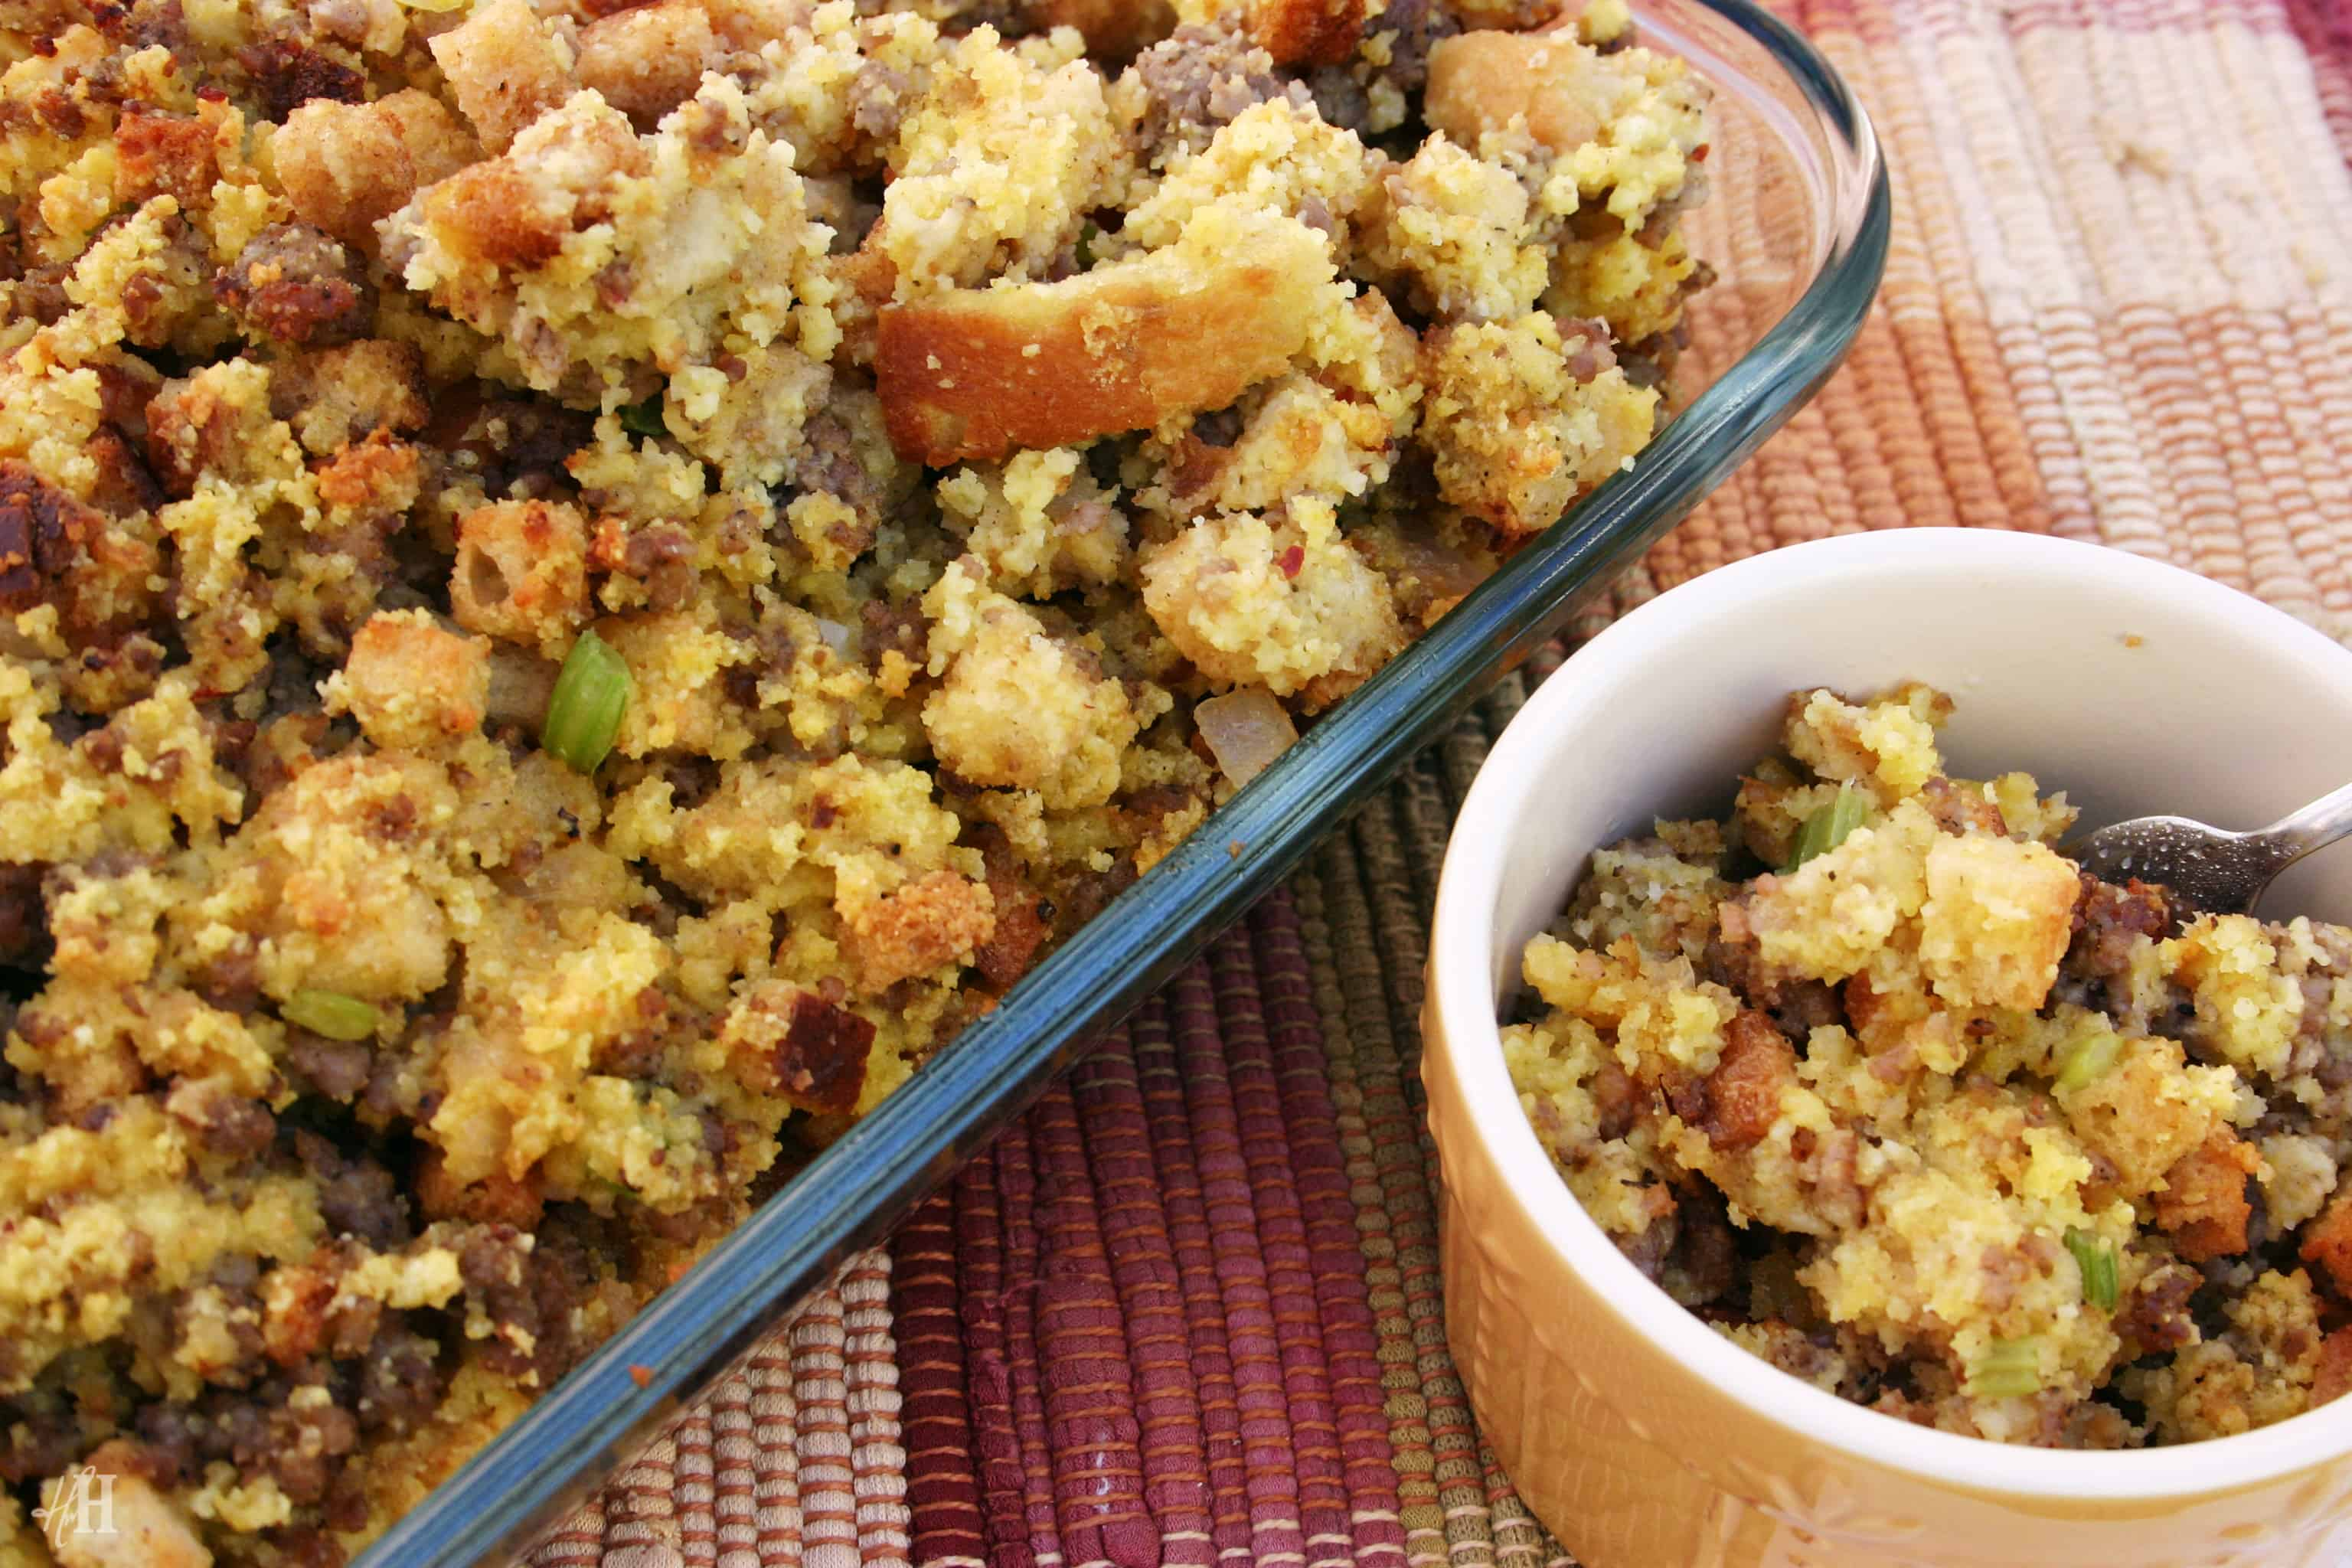 Sweet and savoury cornbread stuffing